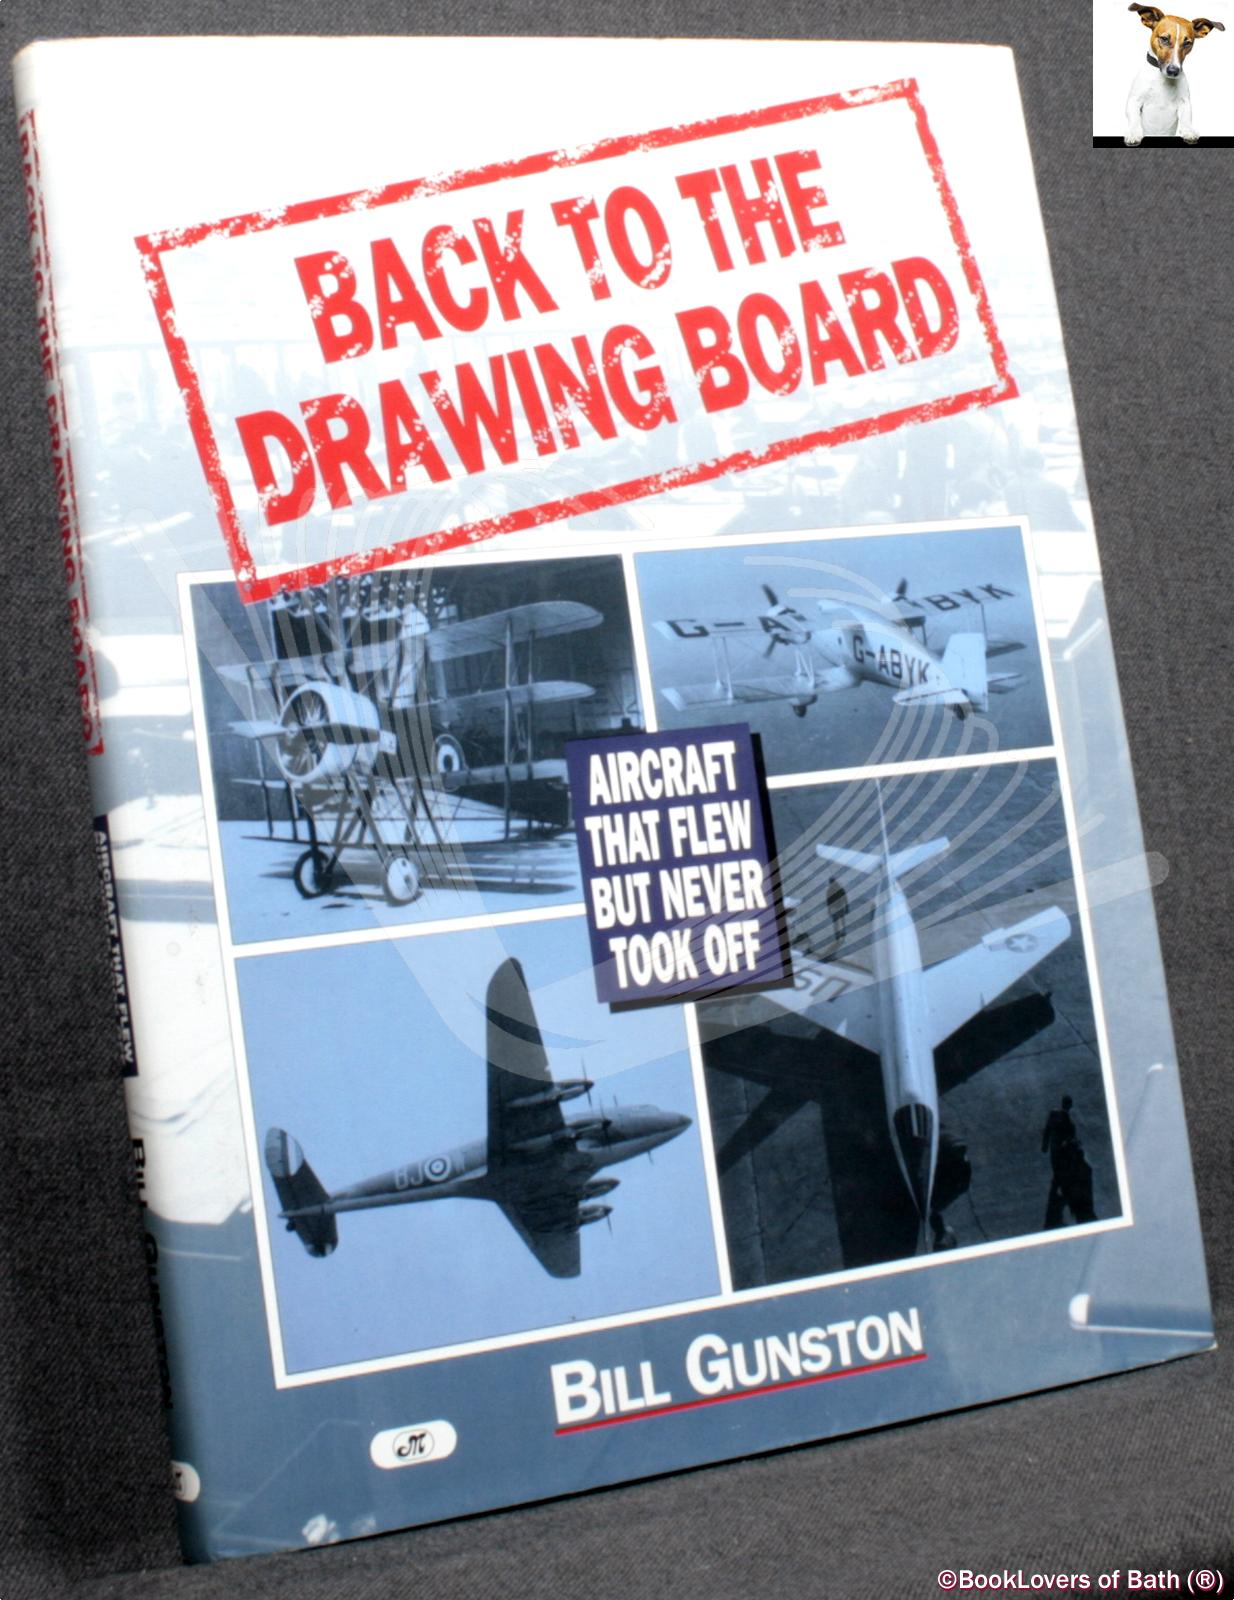 Back to the Drawing Board: Aircraft That Flew But Never Took Off - Bill Gunston